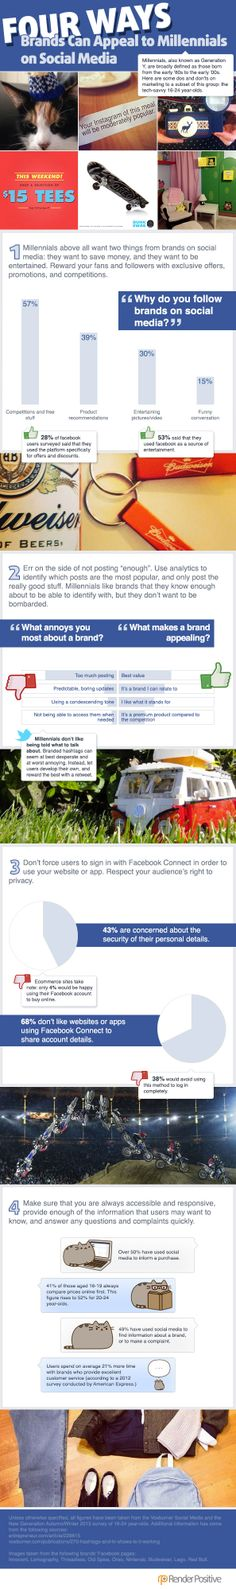 Four ways brands can appeal to millennials on Social Media - #SocialMedia #Infographic